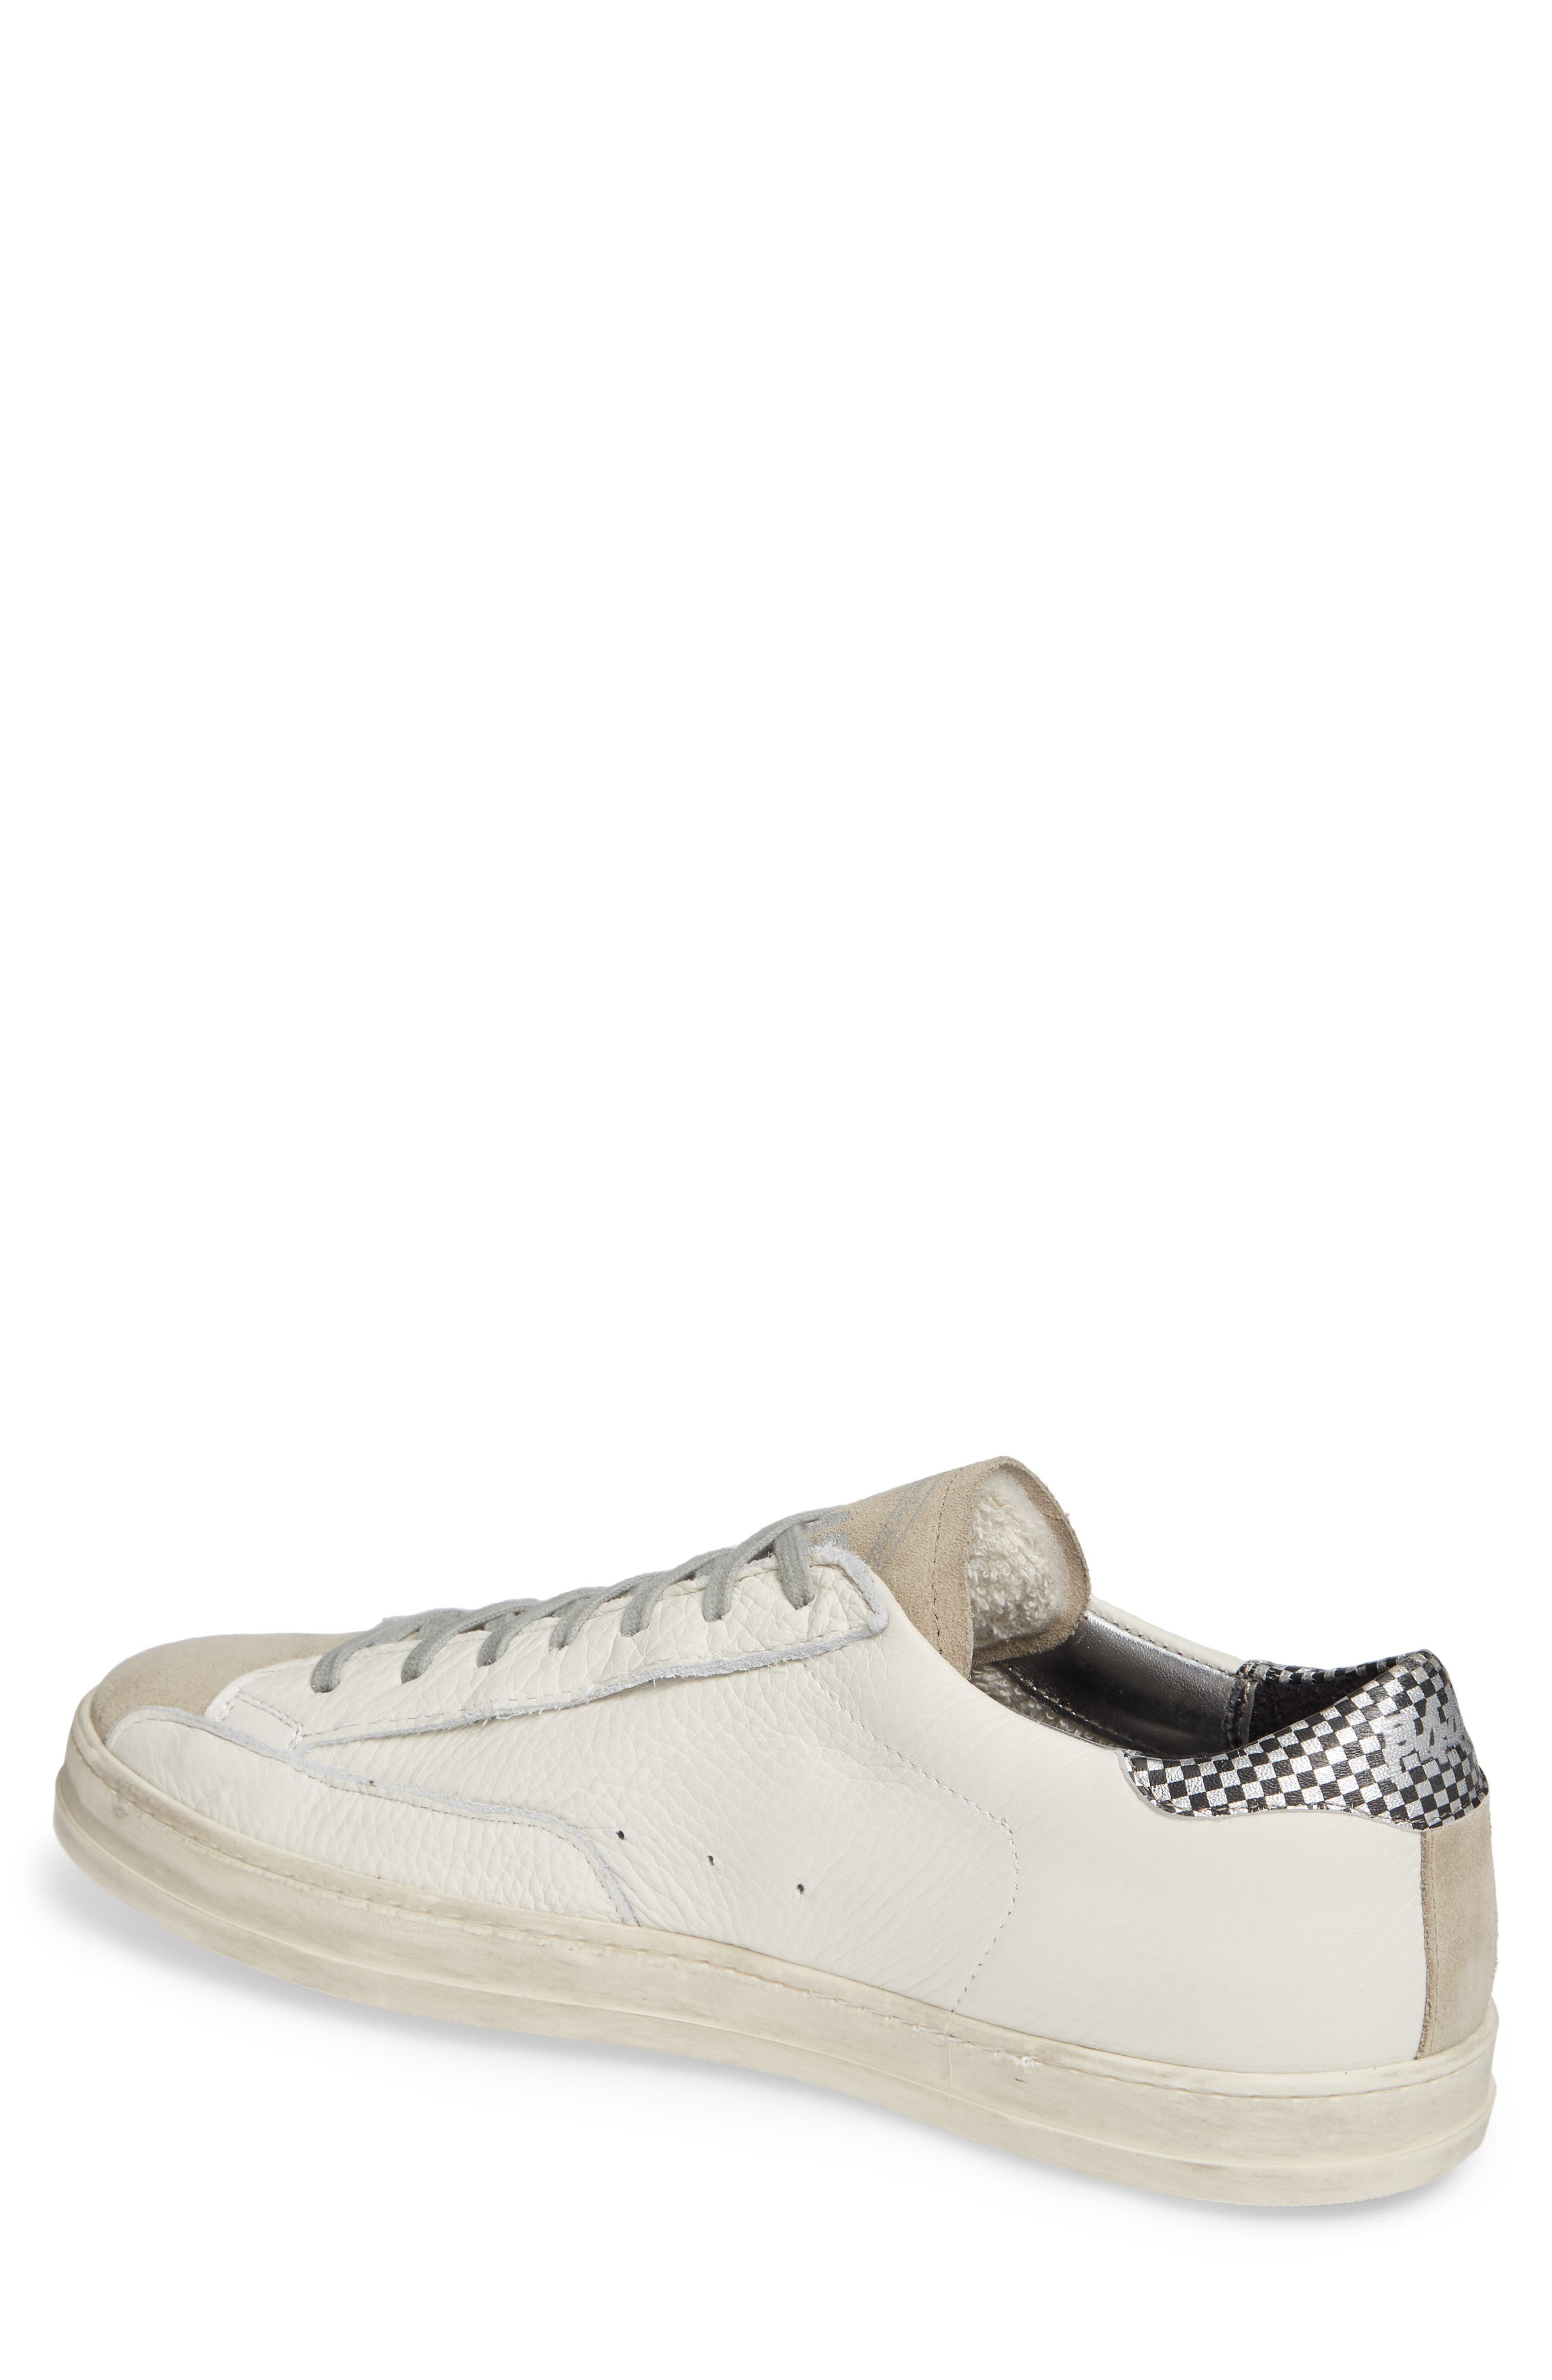 A8John Perforated Sneaker,                             Alternate thumbnail 2, color,                             WHITE/ WHITE